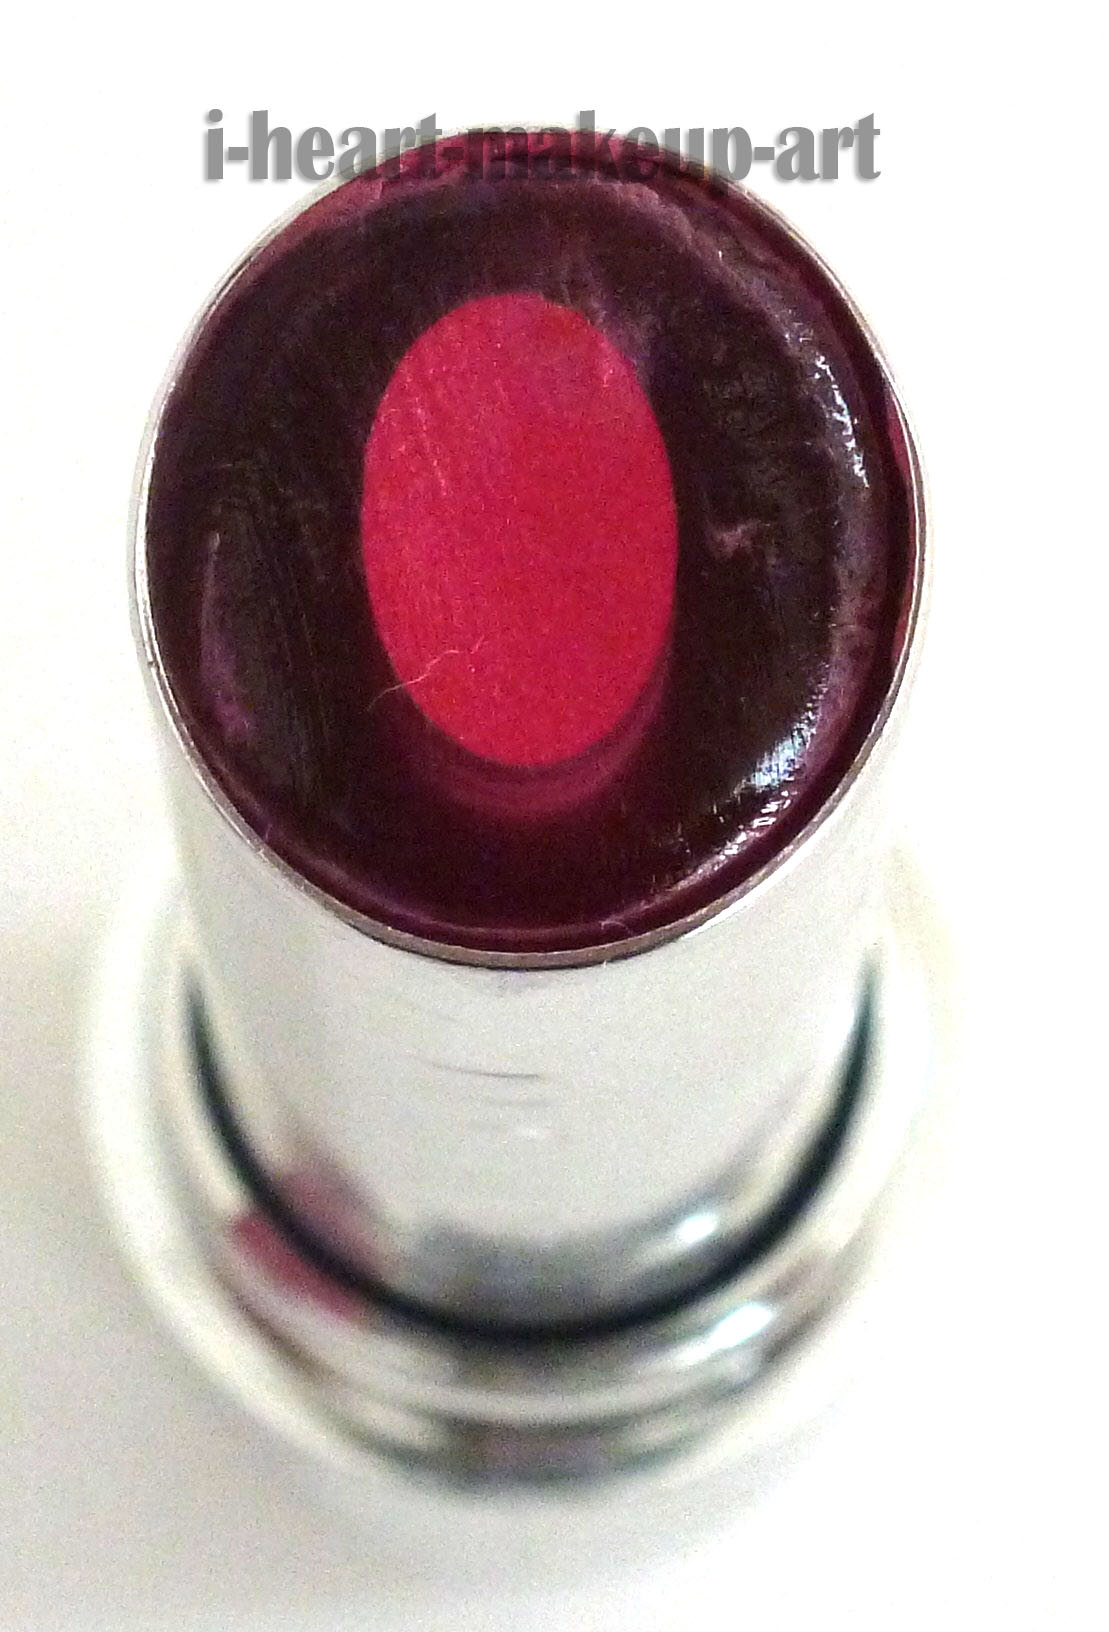 REVIEW: Avon Shine Attract Lipstick in Fuchsia Flare